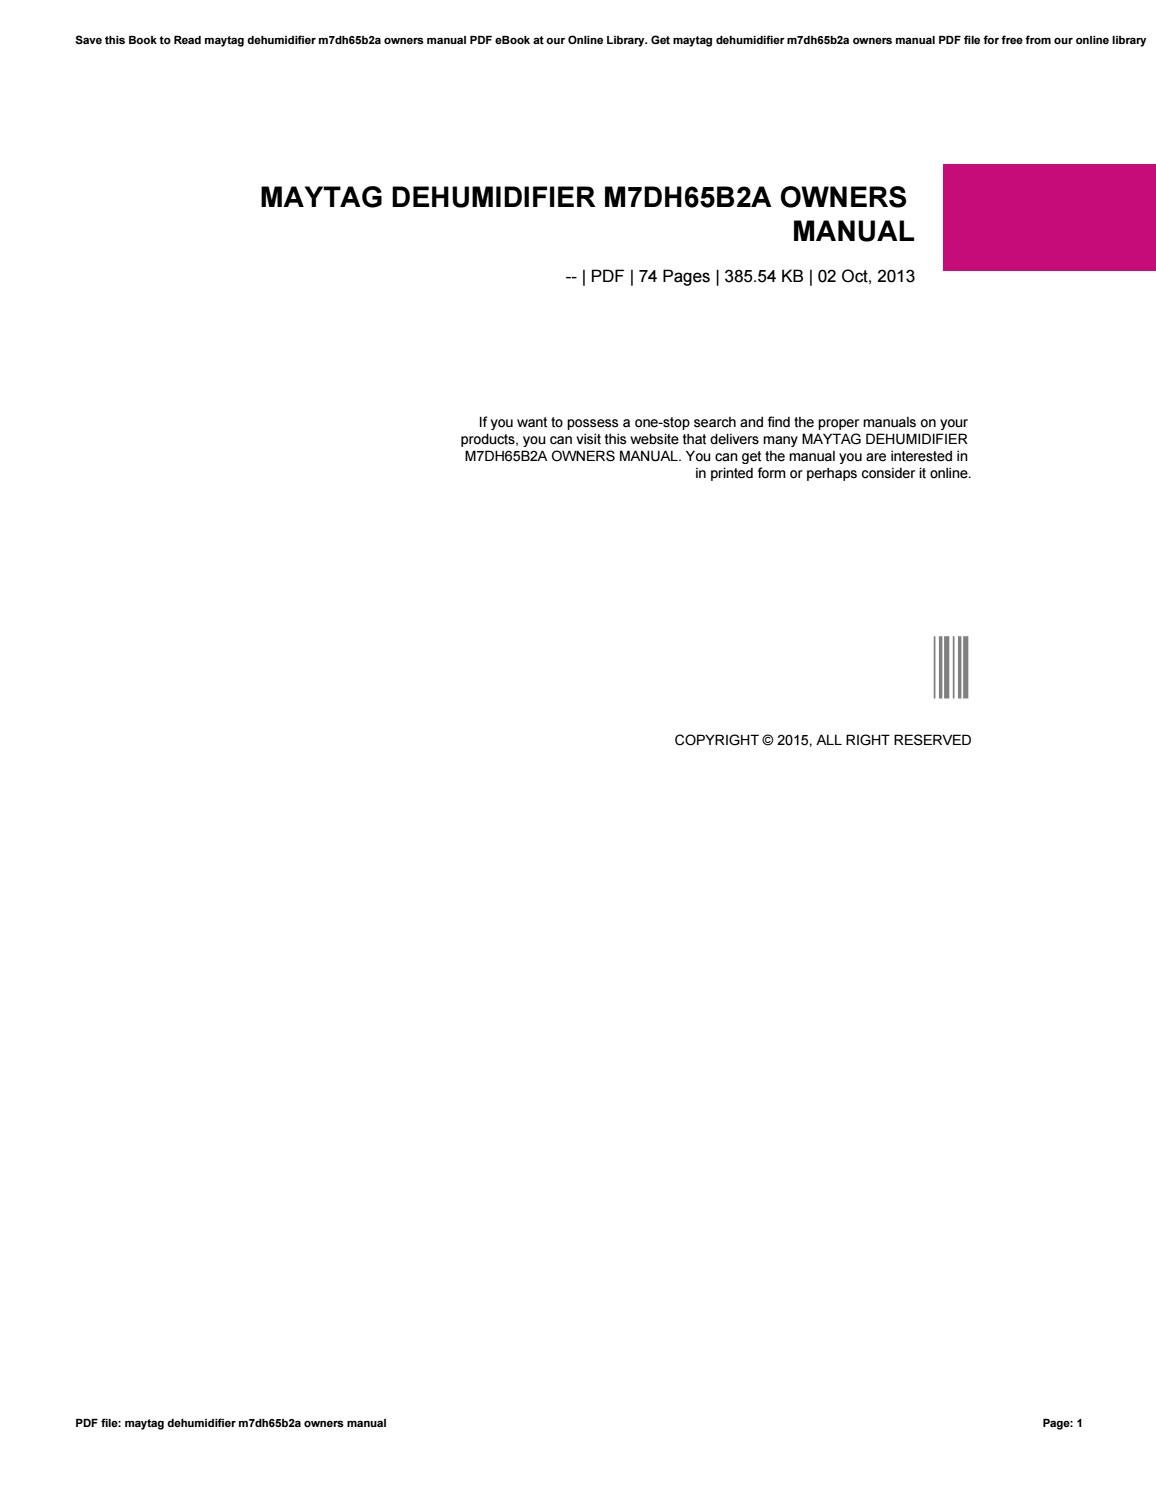 maytag dehumidifier m7dh65b2a owners manual by psles2 issuu Maytag Dehumidifier Troubleshooting maytag dehumidifier user manual